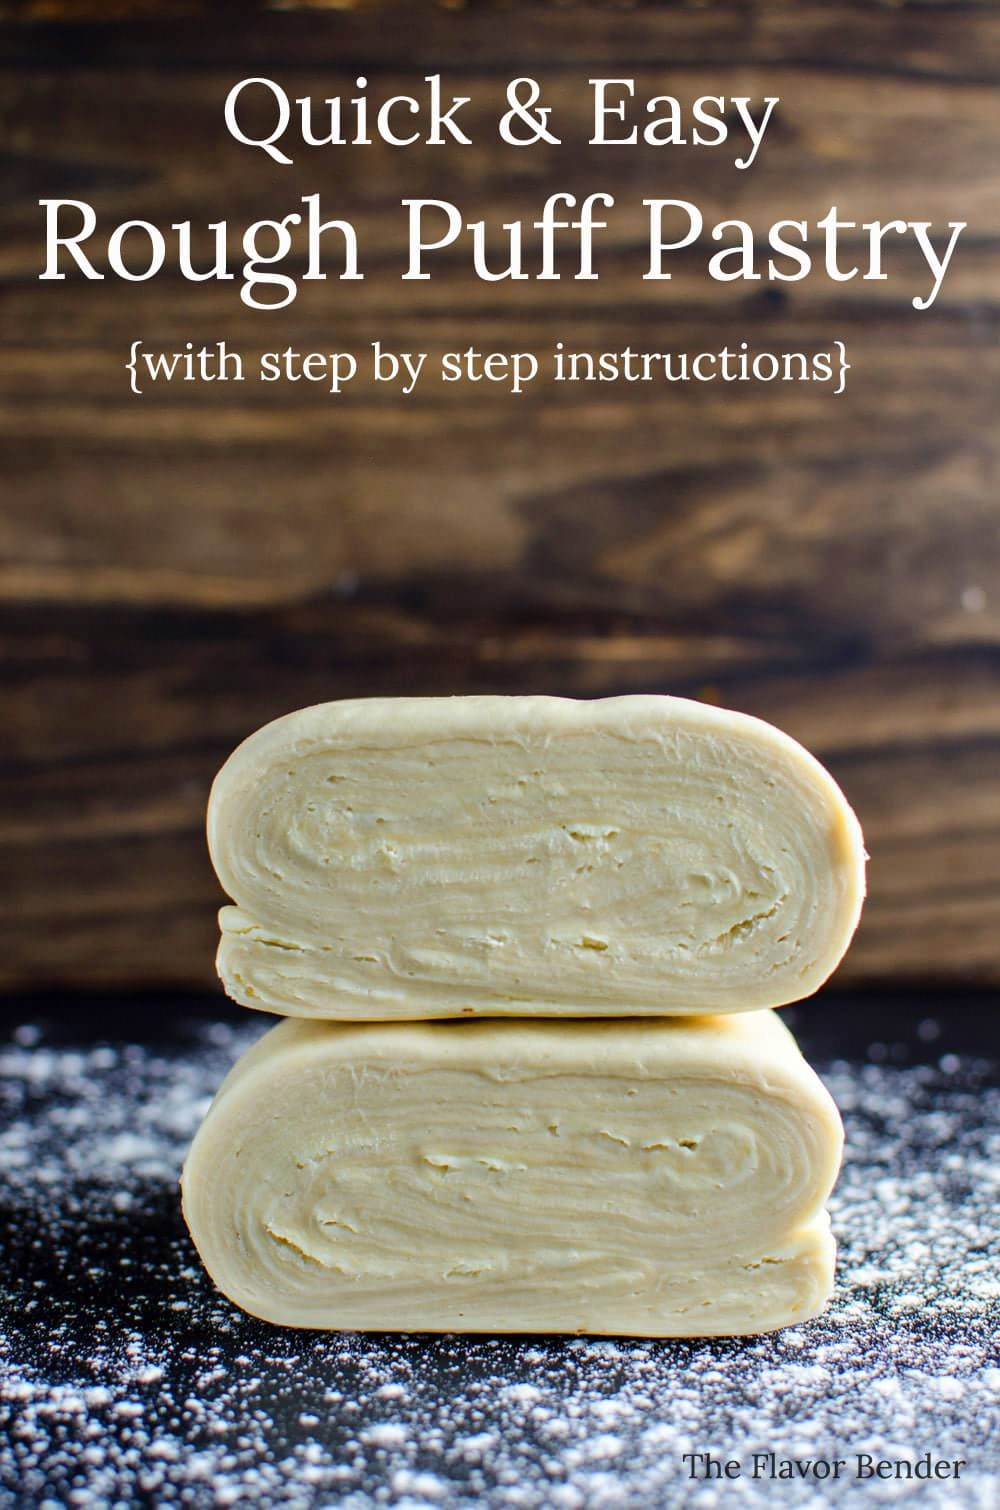 How to make a pastry dough recipe